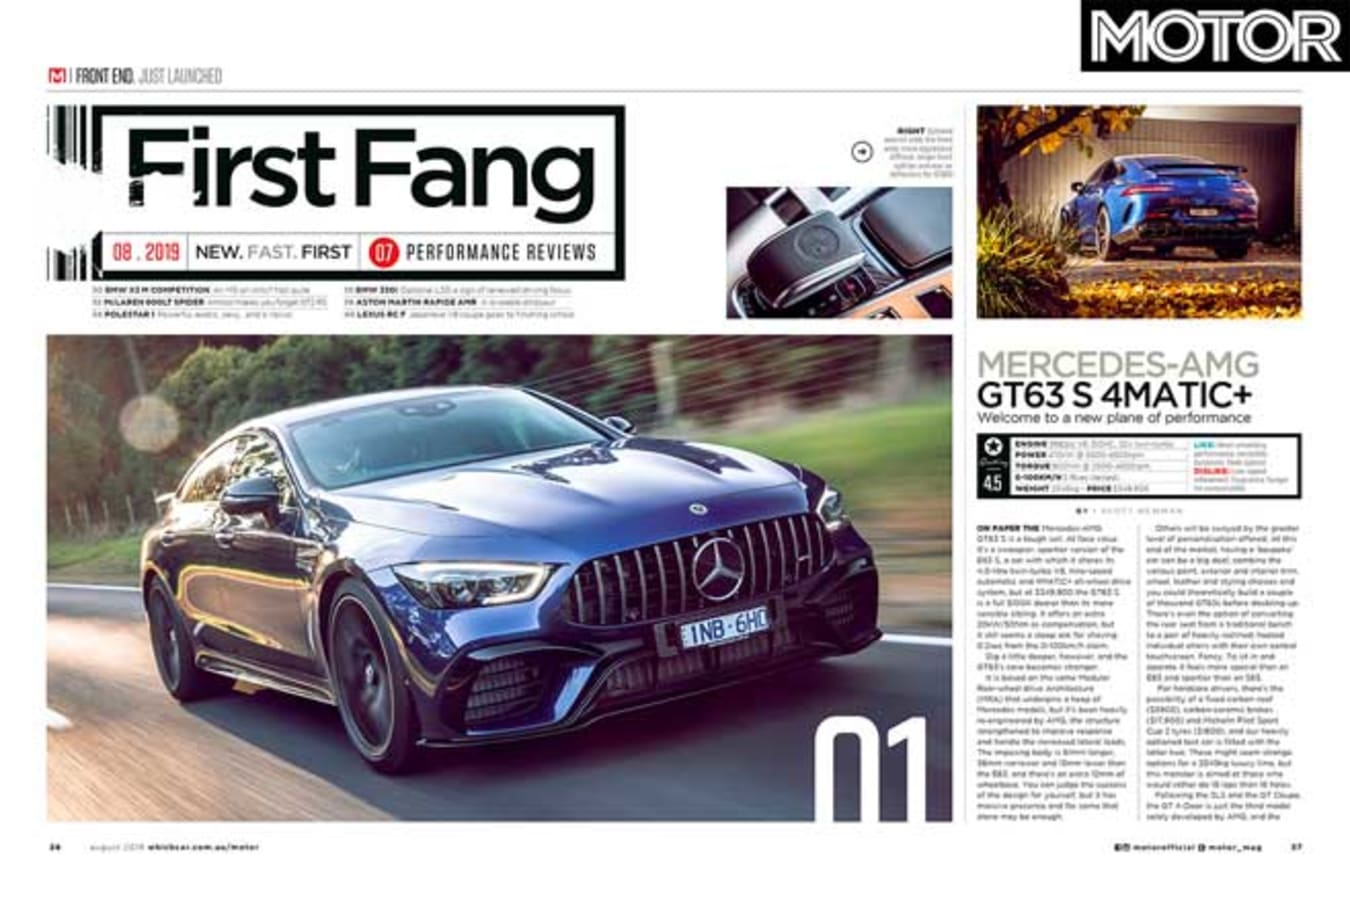 MOTOR August 2019 Issue Preview First Drive Review Jpg